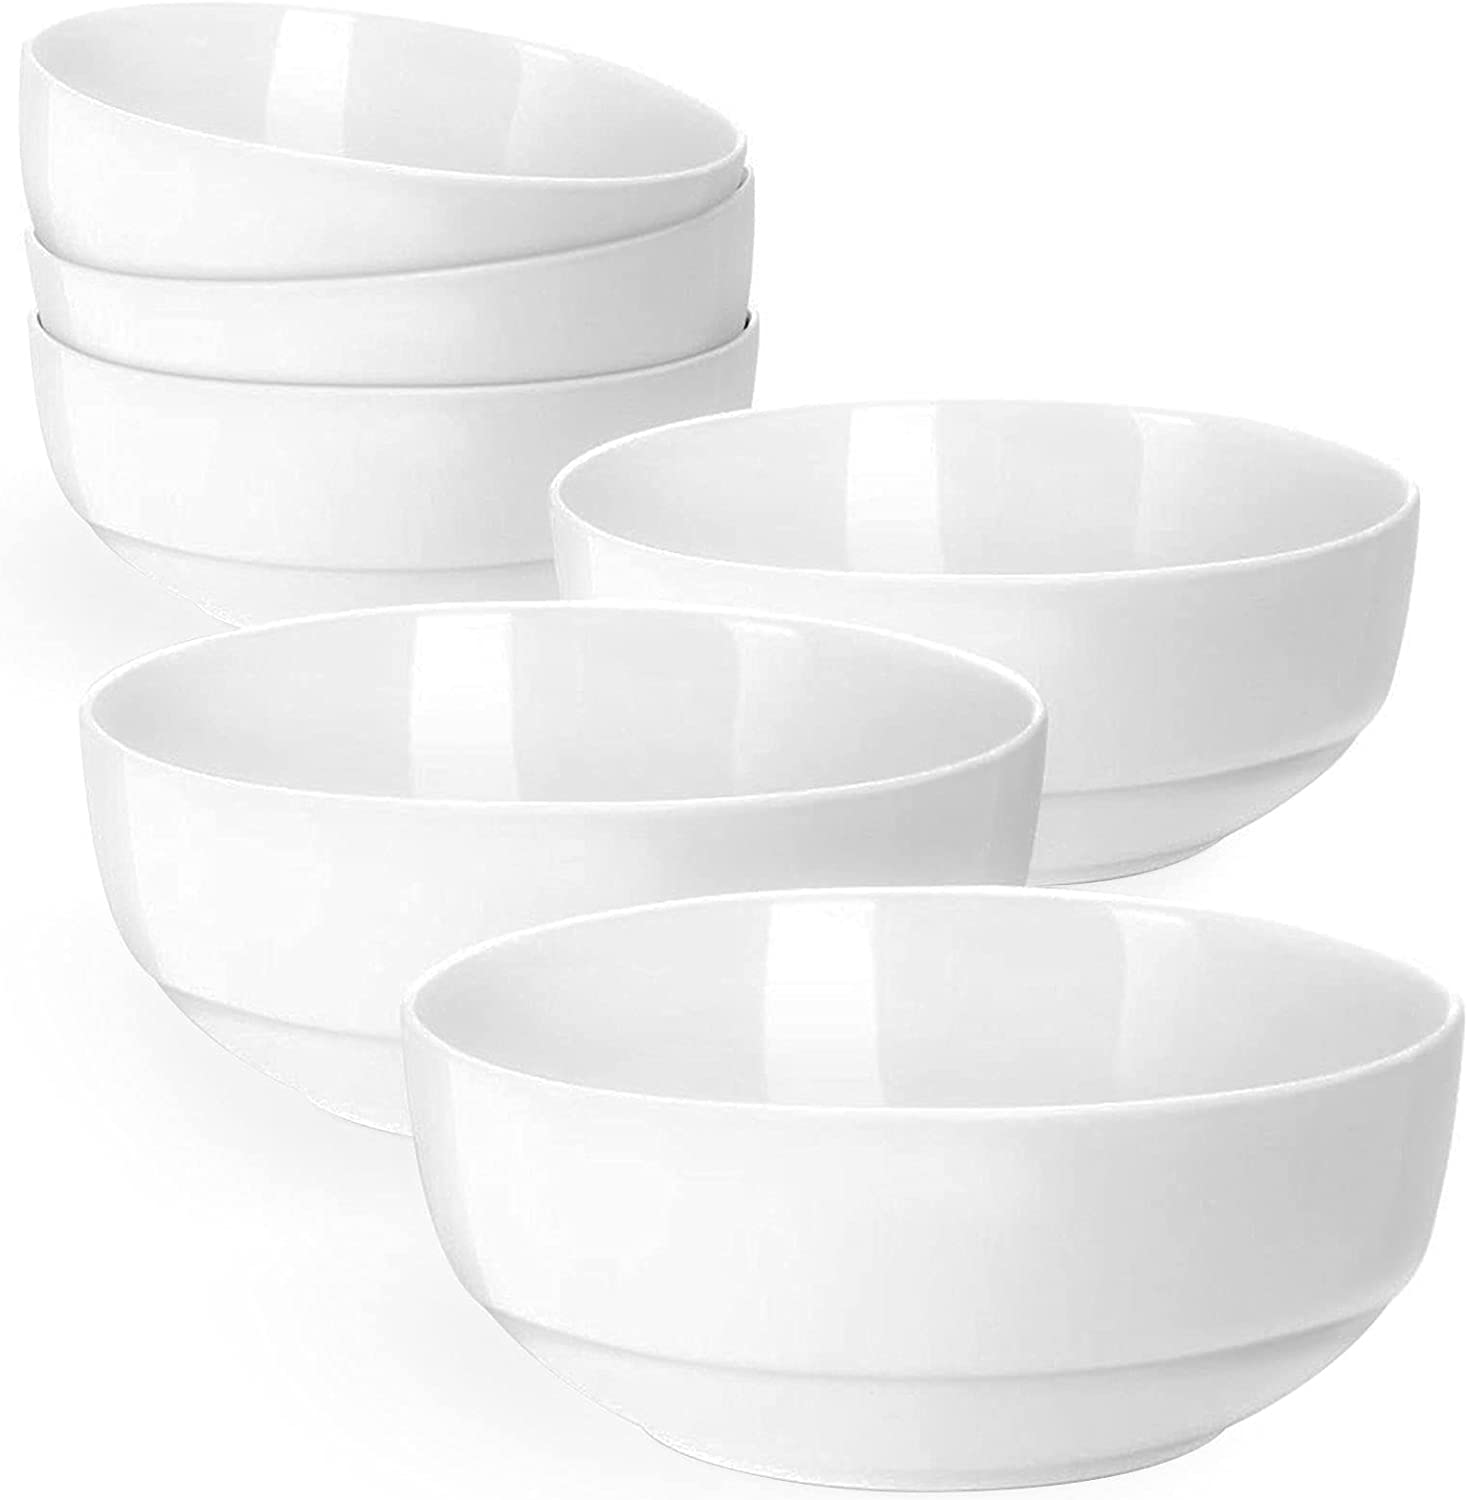 Artena Bright White Cereal Bowl Set 22 Ounces Max 89% OFF Max 55% OFF 6 Soup Bowls of